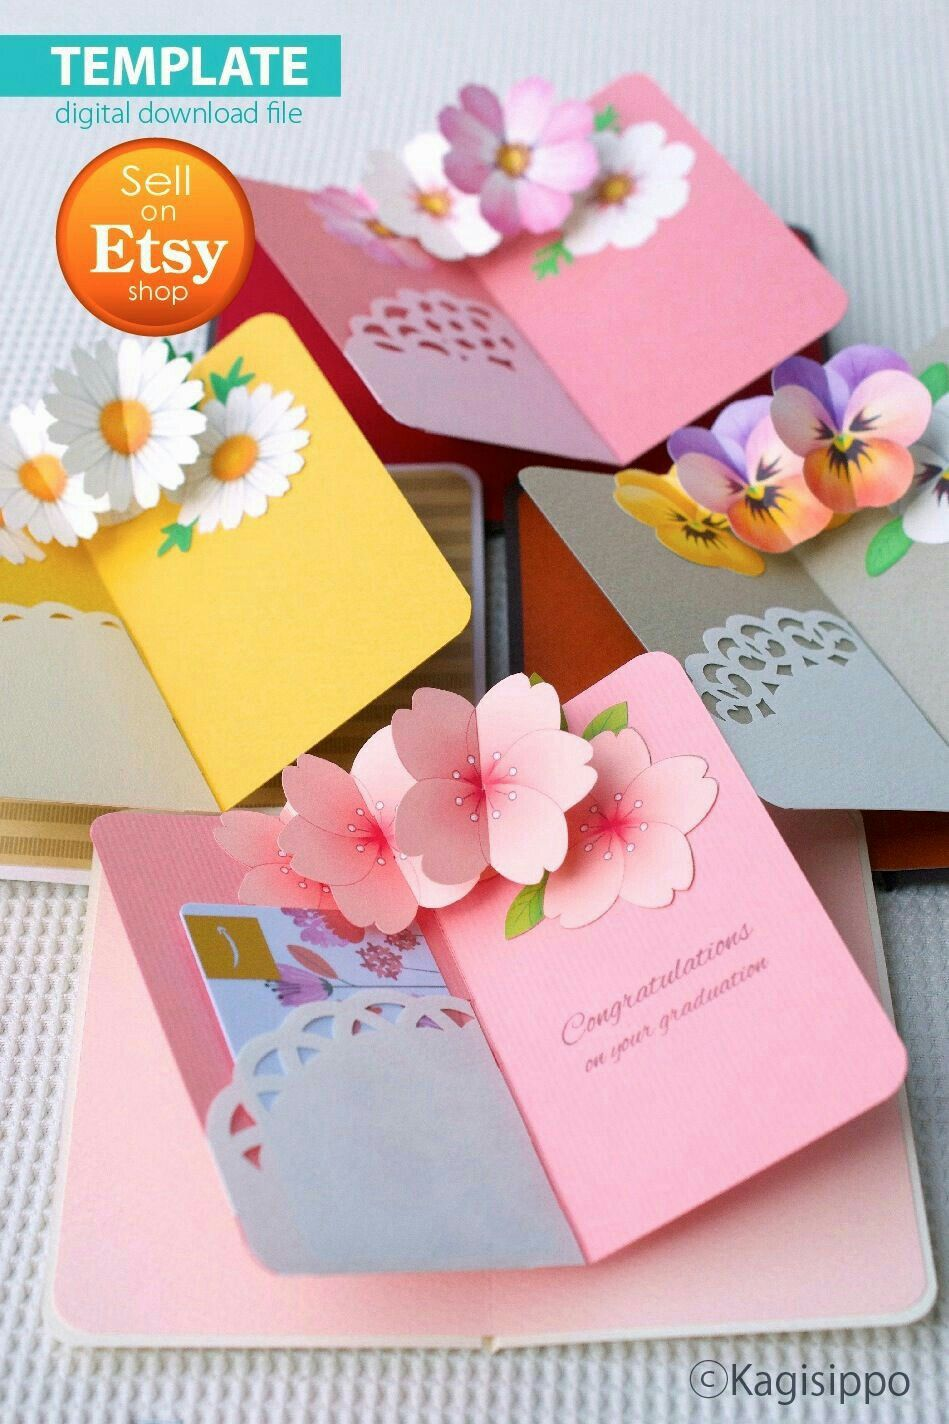 Pin By Maddy Ramos On اشياء يدويه Birthday Card Pop Up Pop Up Flowers Gift Card Template